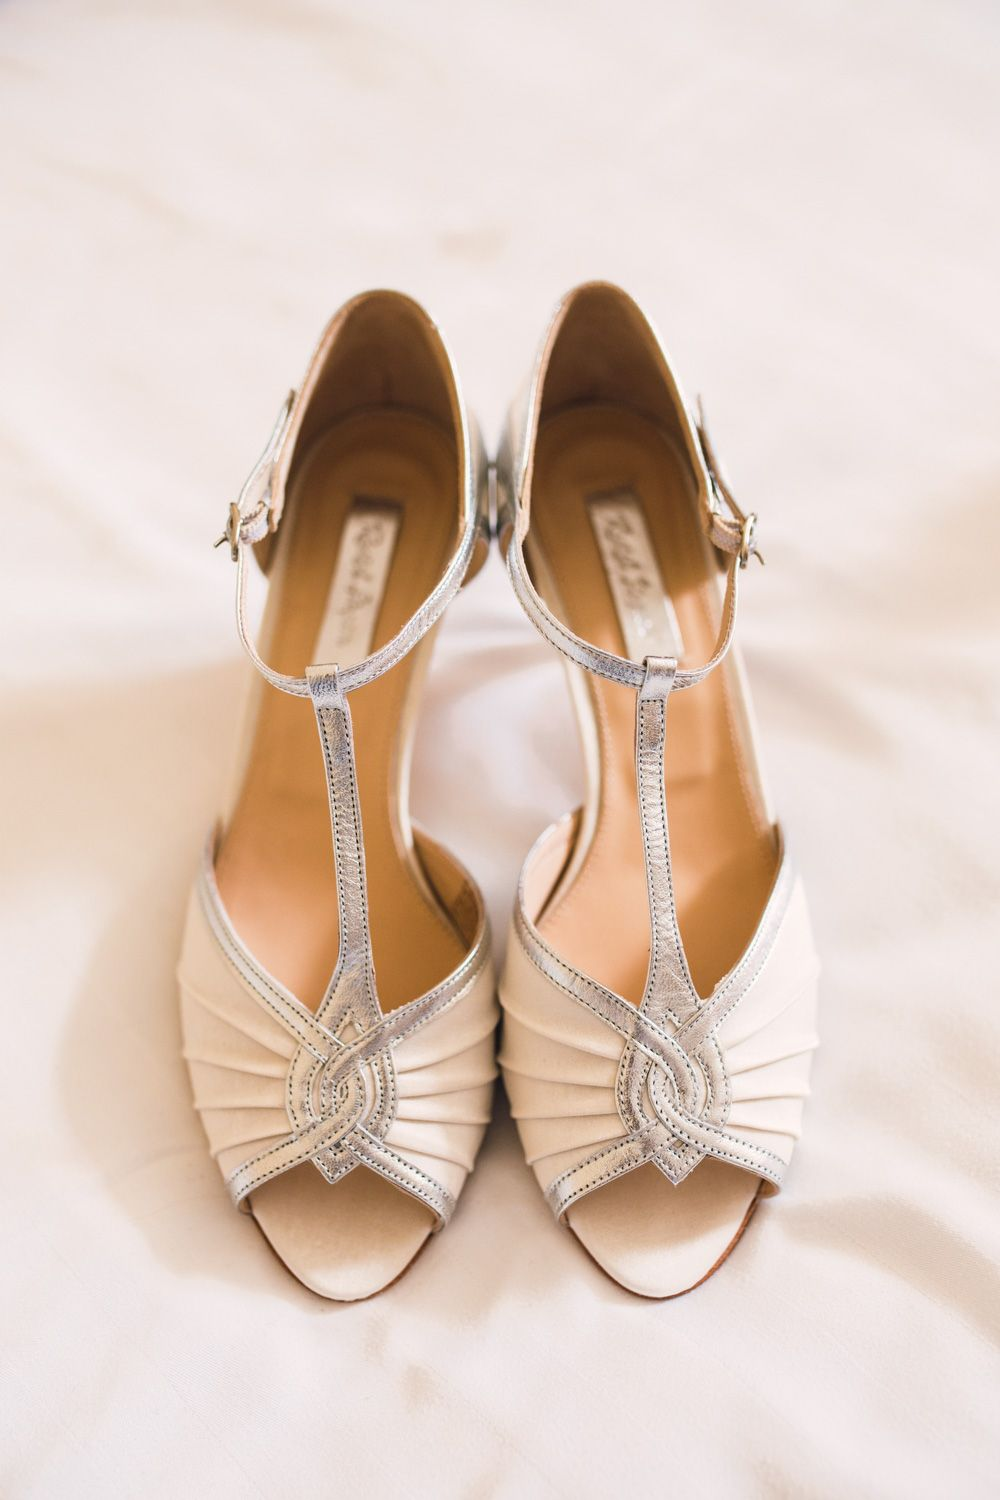 Rachel Simpson Ivory T Bar Matilda Wedding Shoes Photography By Cat Lane Weddings